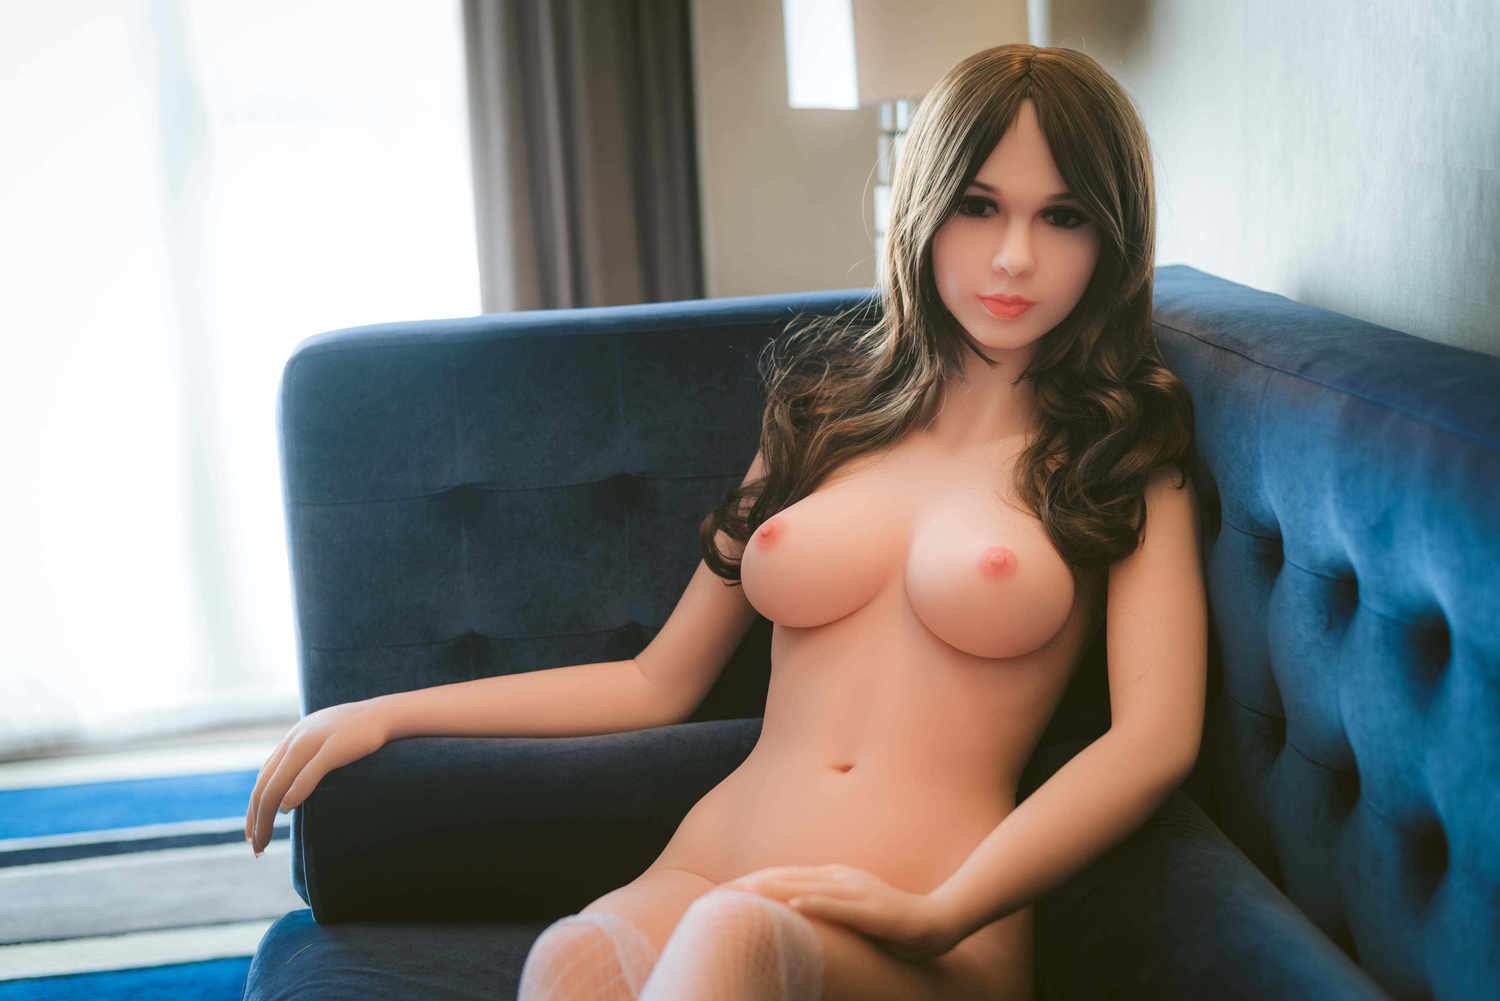 Sidell recommends Milf beauty cheating virgin